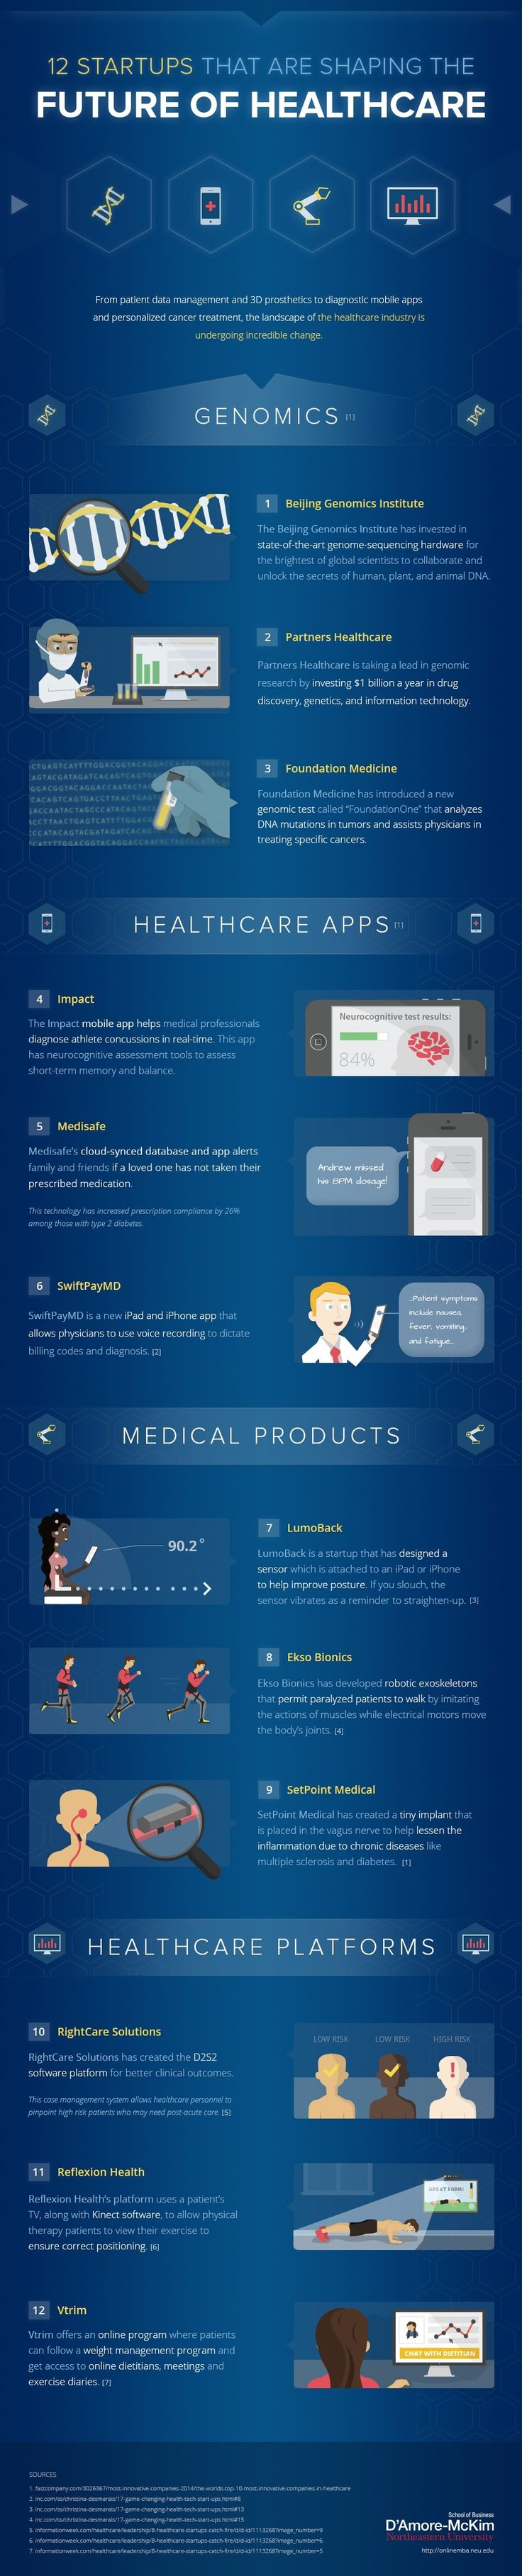 12 Companies Shaping the Future of Digital Health Infographic 10 Medical Innovations Transforming Healthcare Infographic @hitconsultant @deerwalkinc